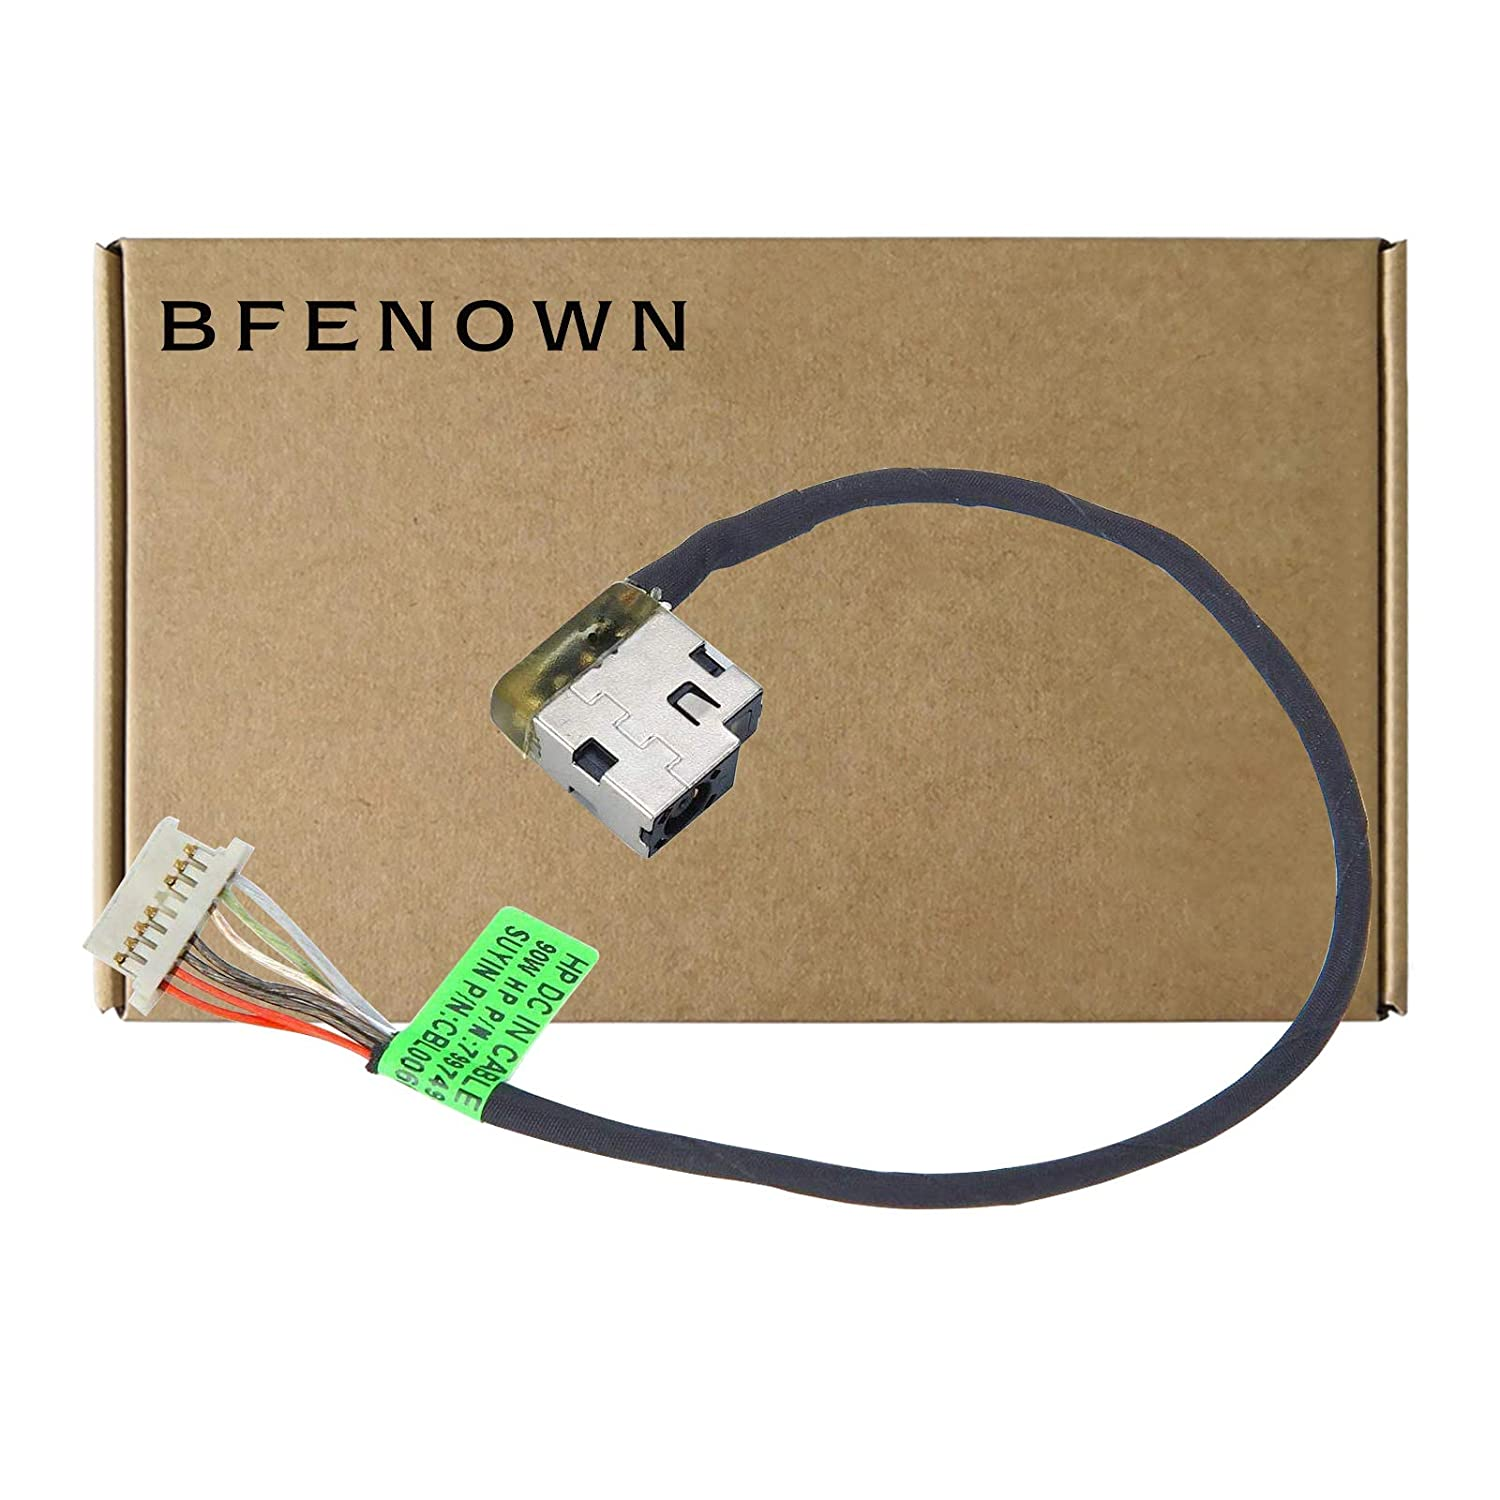 Bfenown DC Power Jack Harness Cable for HP 15-AF 15-AF131DX 15-AC 15-AC113CL 15-AC121DX 15-AC163NR 799736-Y57 799736-S57 799736-F57 813945-001 799736-T57,HP Pavilion 17-G 17-G179NB 17-G113CL 17-G113DX